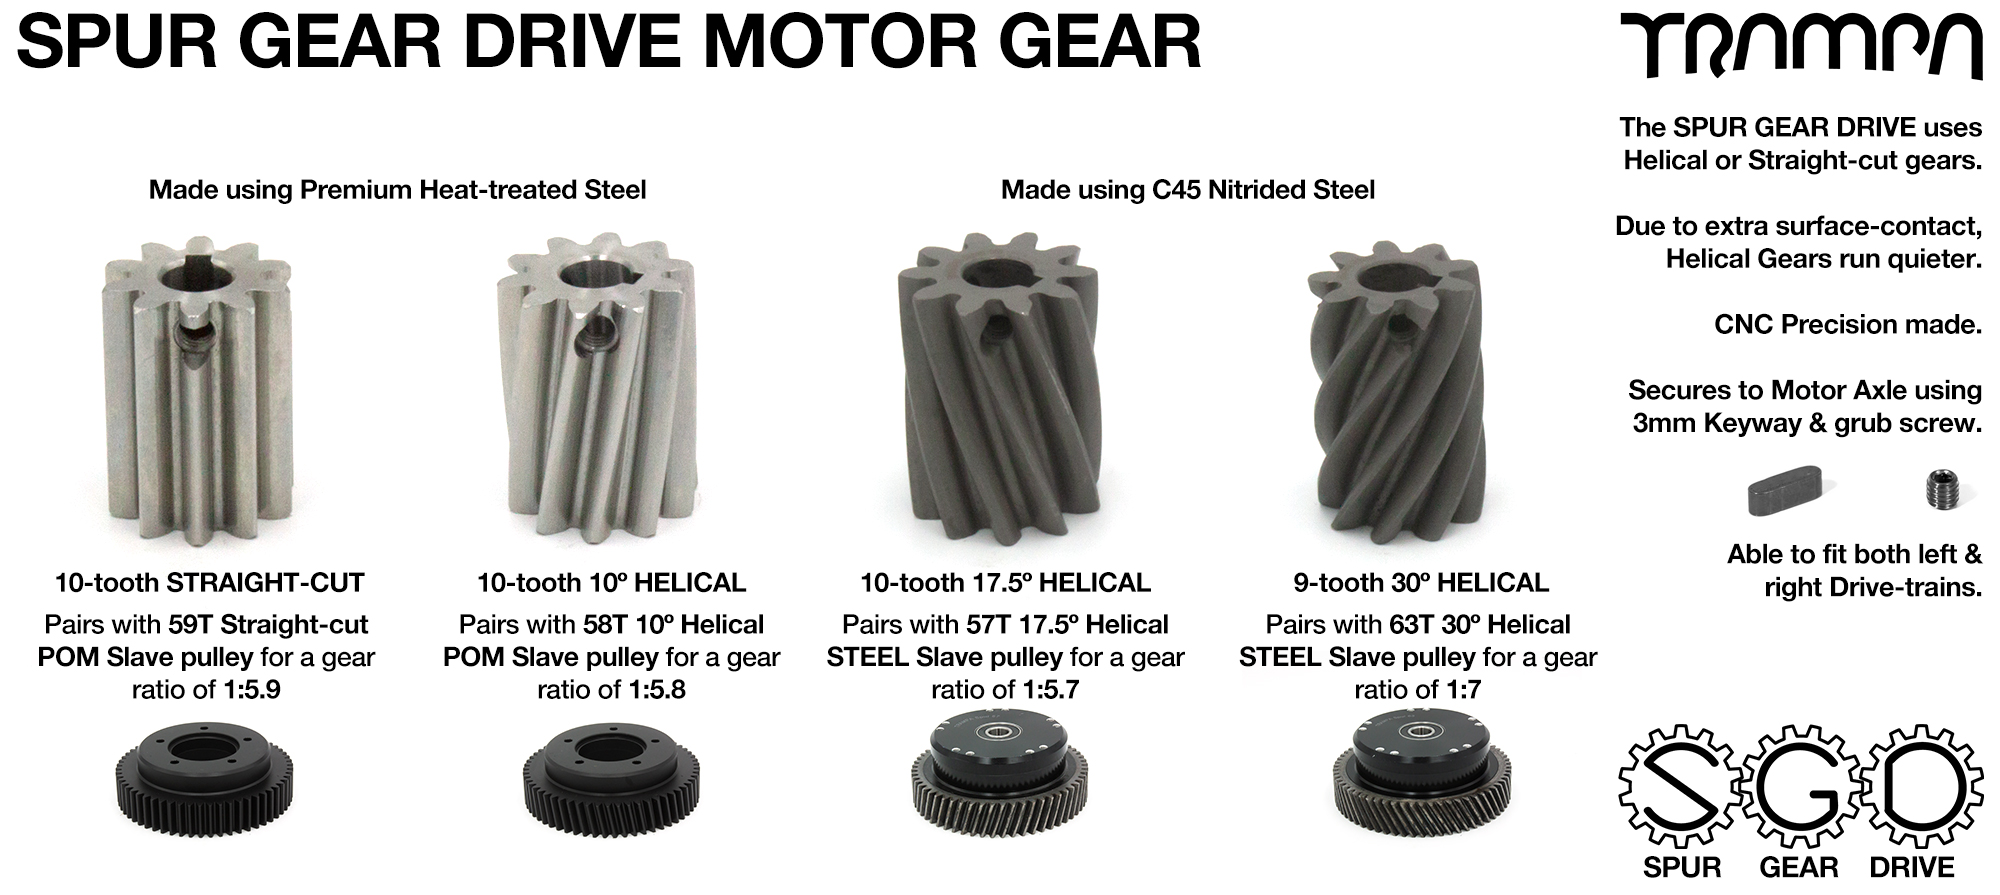 Spur Gear Drive CUSTOM Motor Pulley - c45 HARDENED STEEL